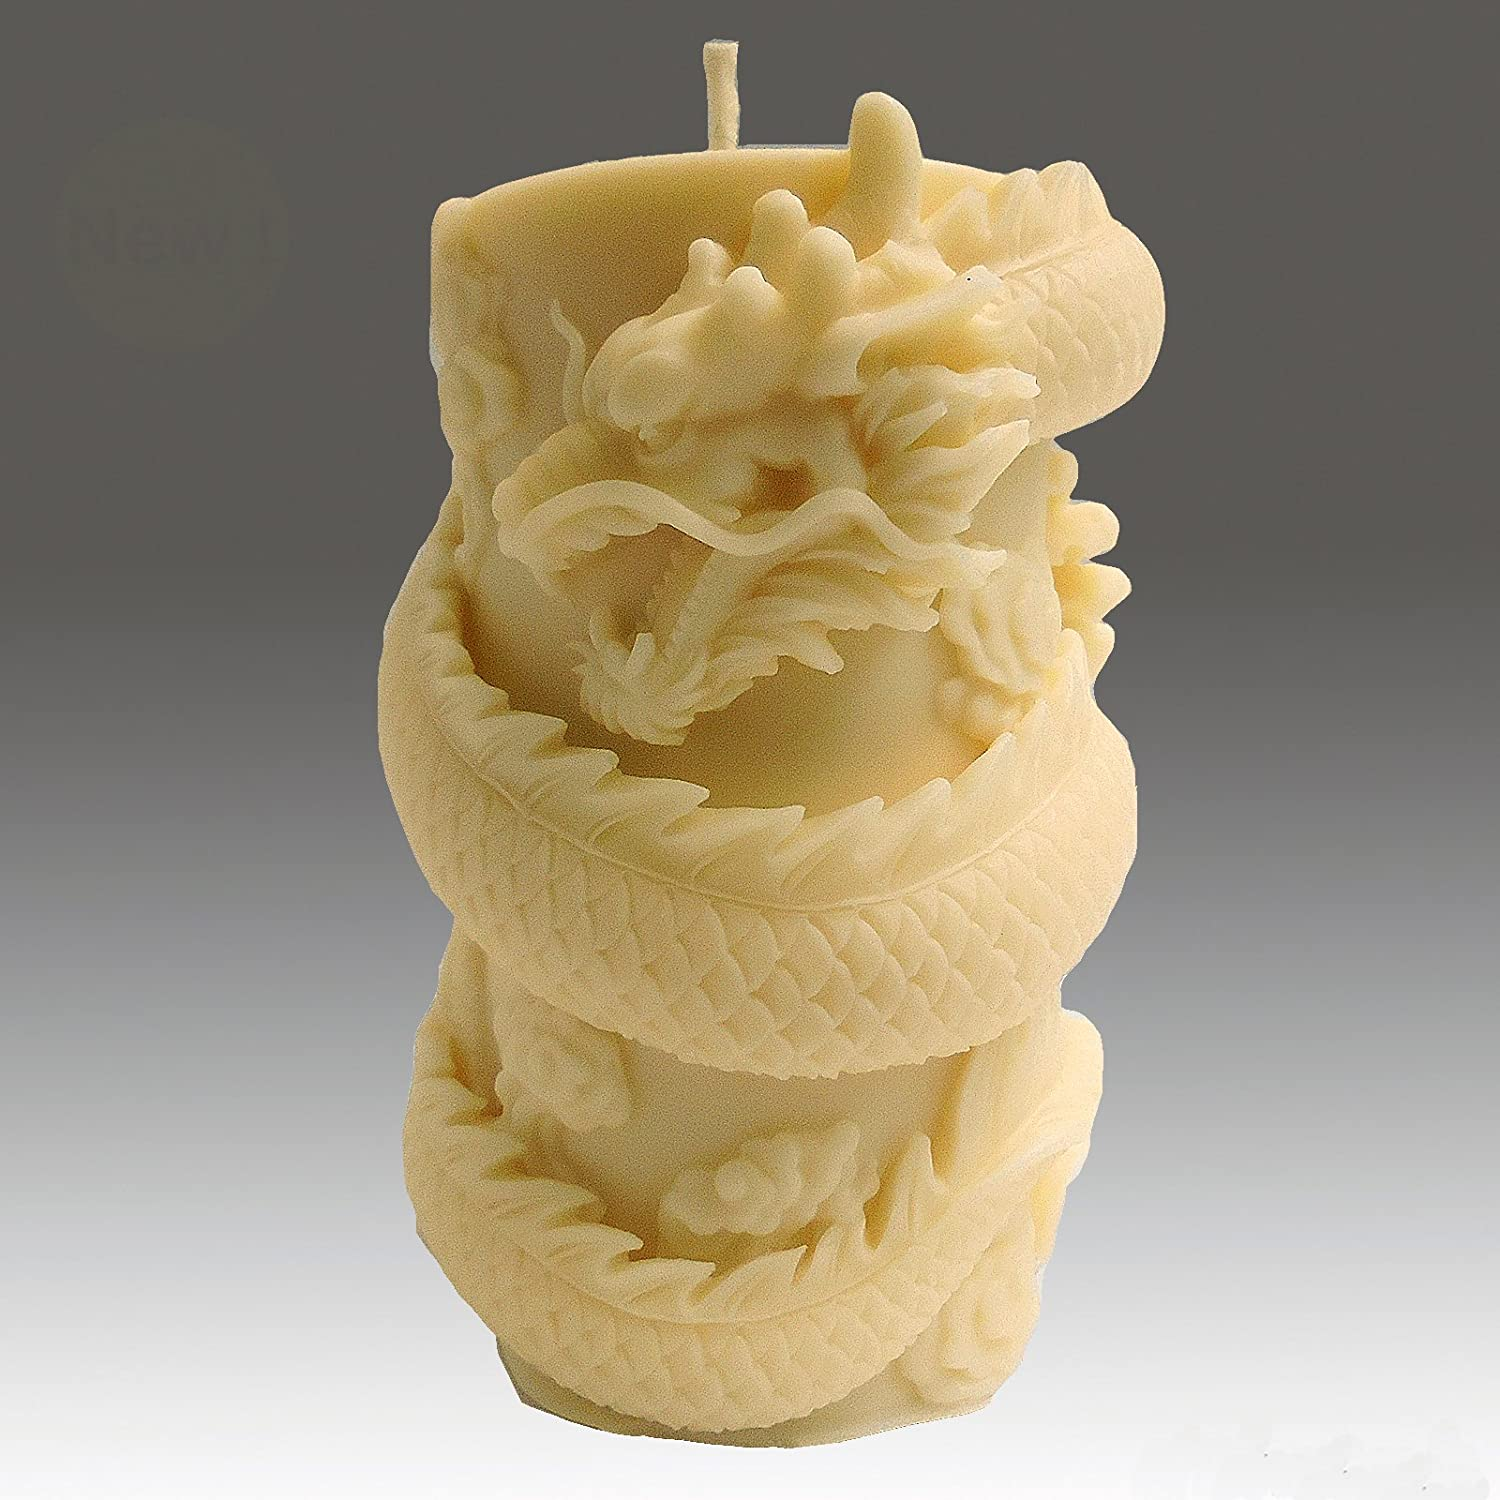 egbhouse, Natural Beeswax Stone Dragon Pillar Candle Golden Bright Co. Ltd. CNDLDRAGONPILLAR01